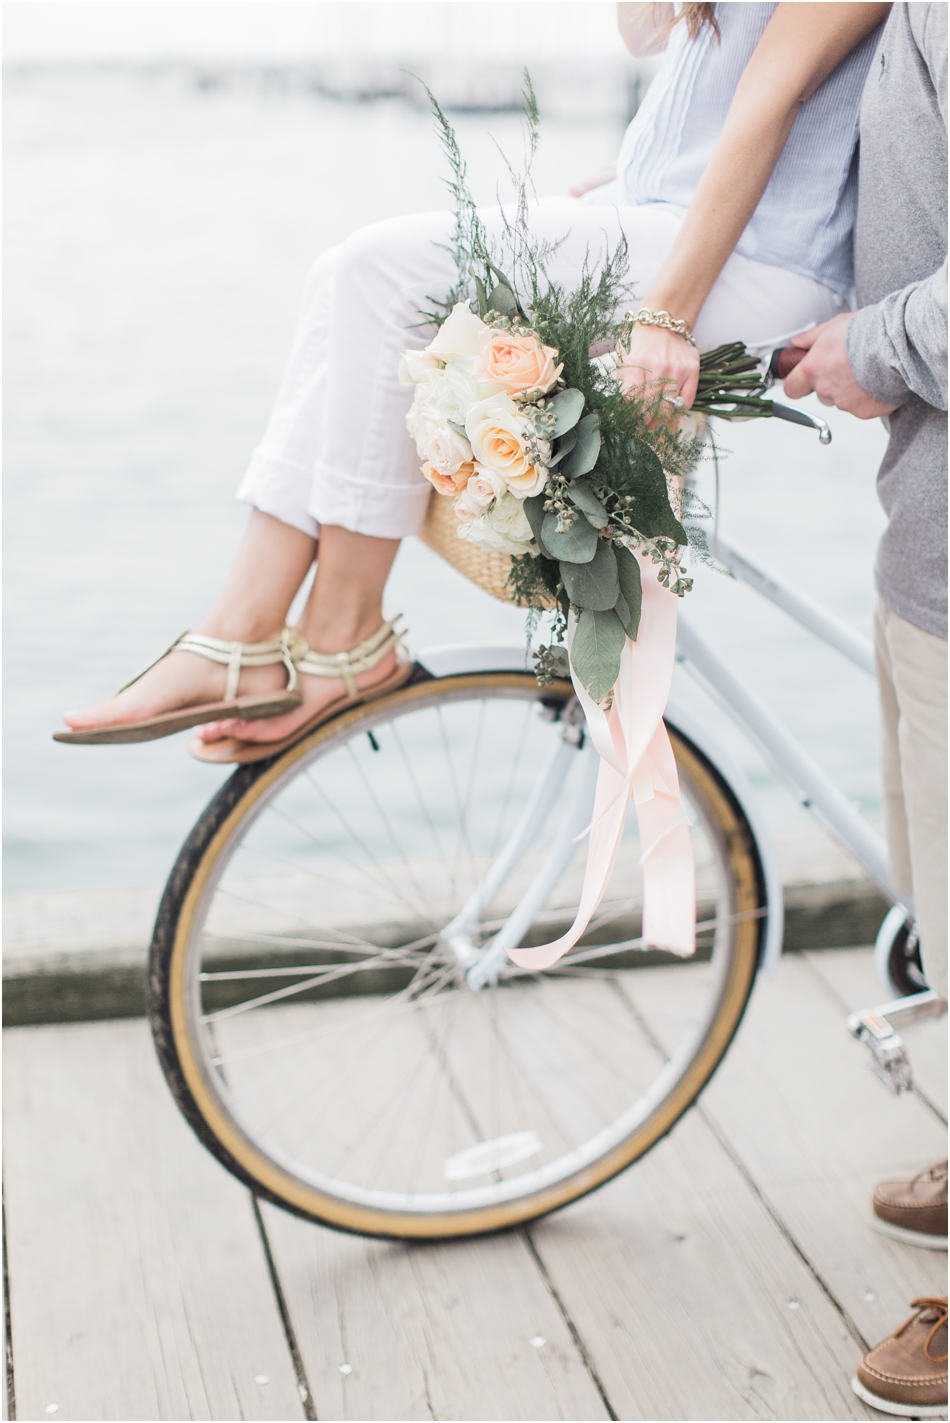 nantucket_engagement_session_downtown_bike_basket_breezer_downtown_8_boston_massachusetts_cape_cod_new_england_wedding_photographer_Meredith_Jane_Photography_photo_1441.jpg